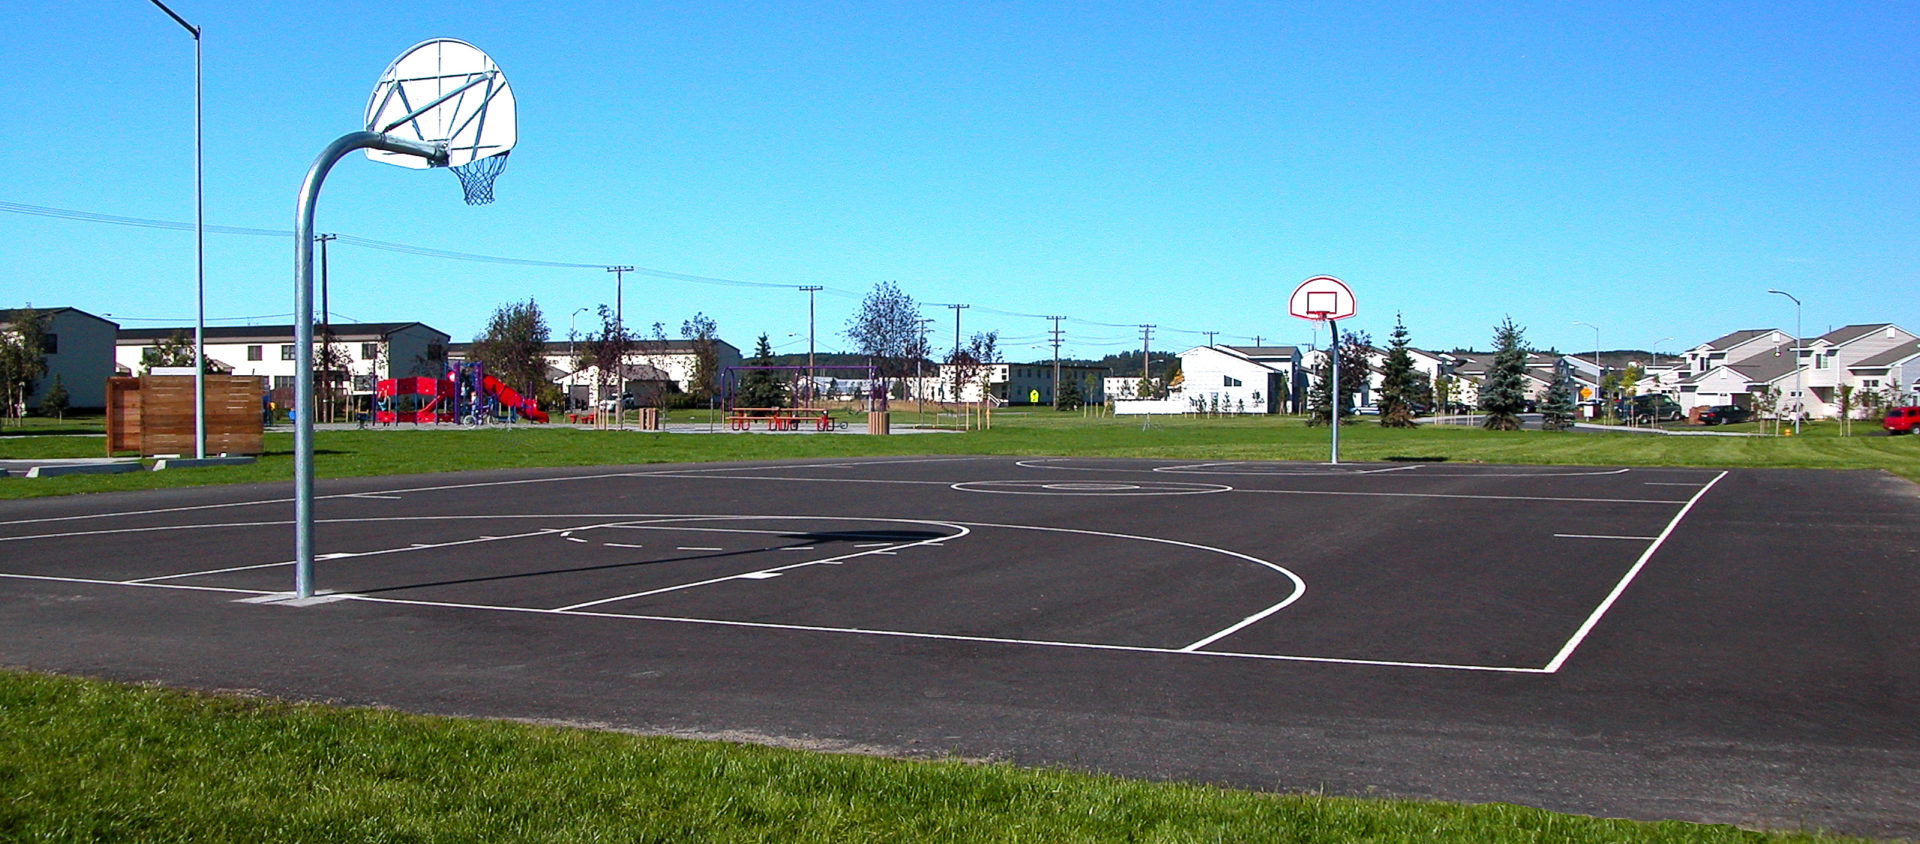 An outdoor basketball court near the Dallas neighborhood on JBER serves area residents